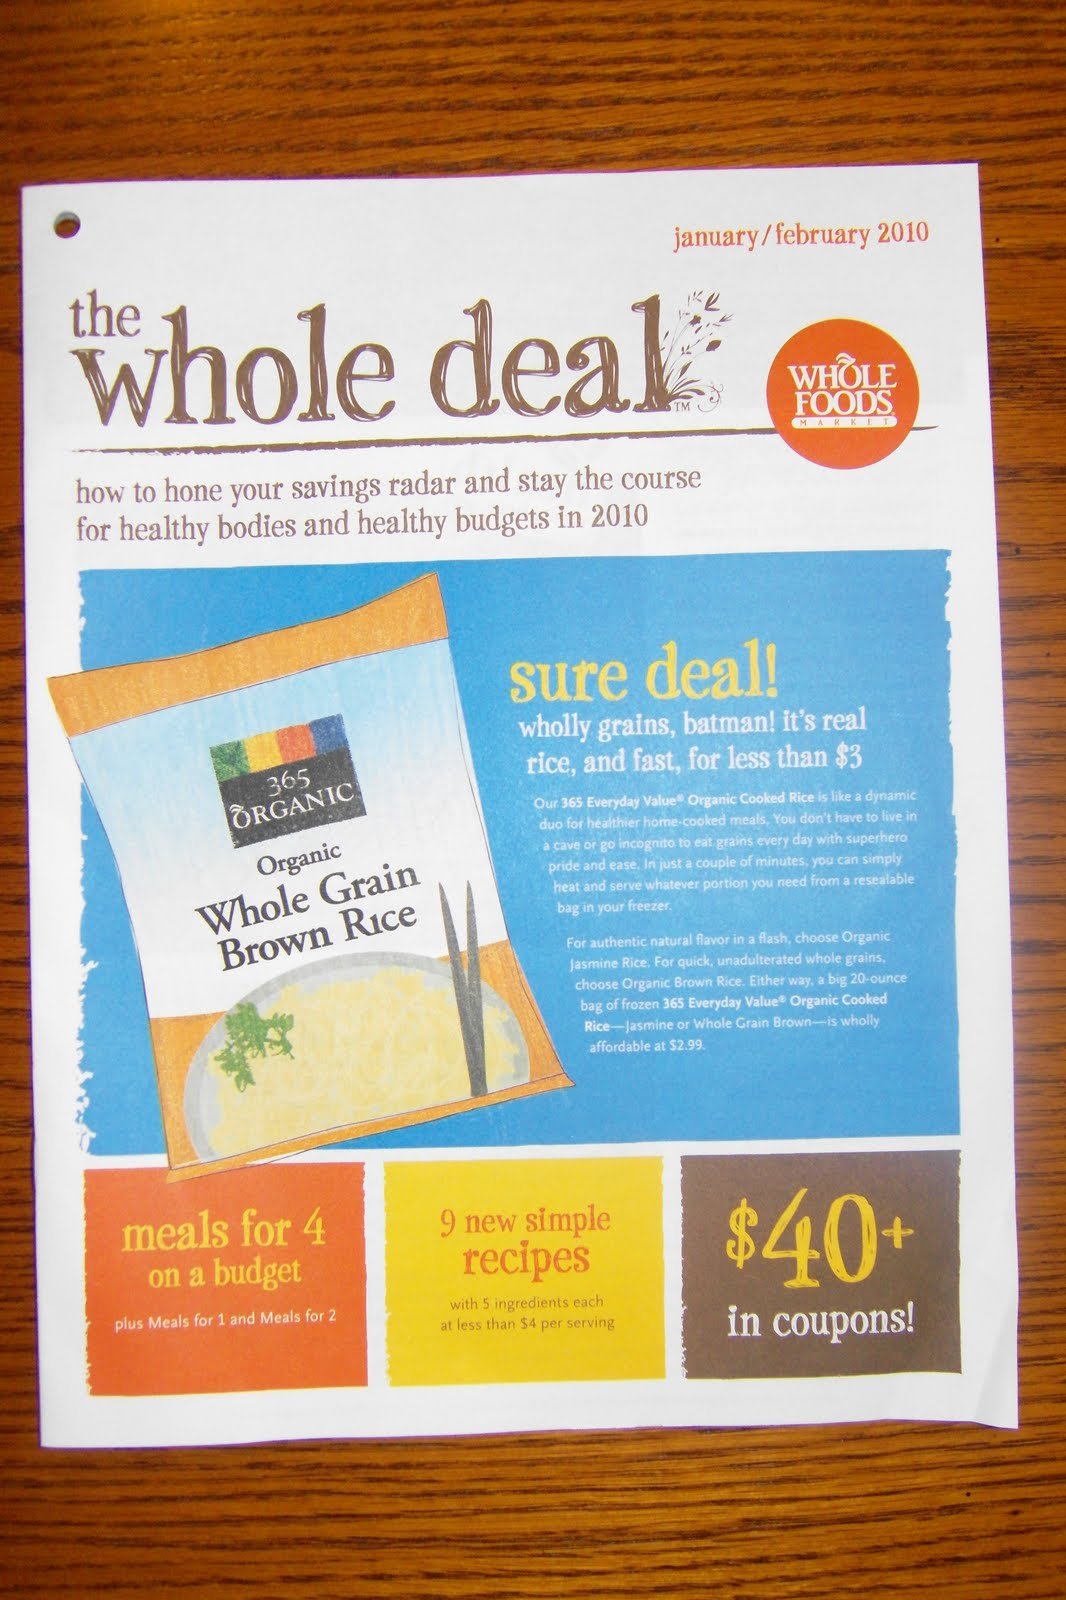 image about Whole Foods Printable Coupons titled Comprehensive food coupon reserve / 2 inch ceramic flat iron